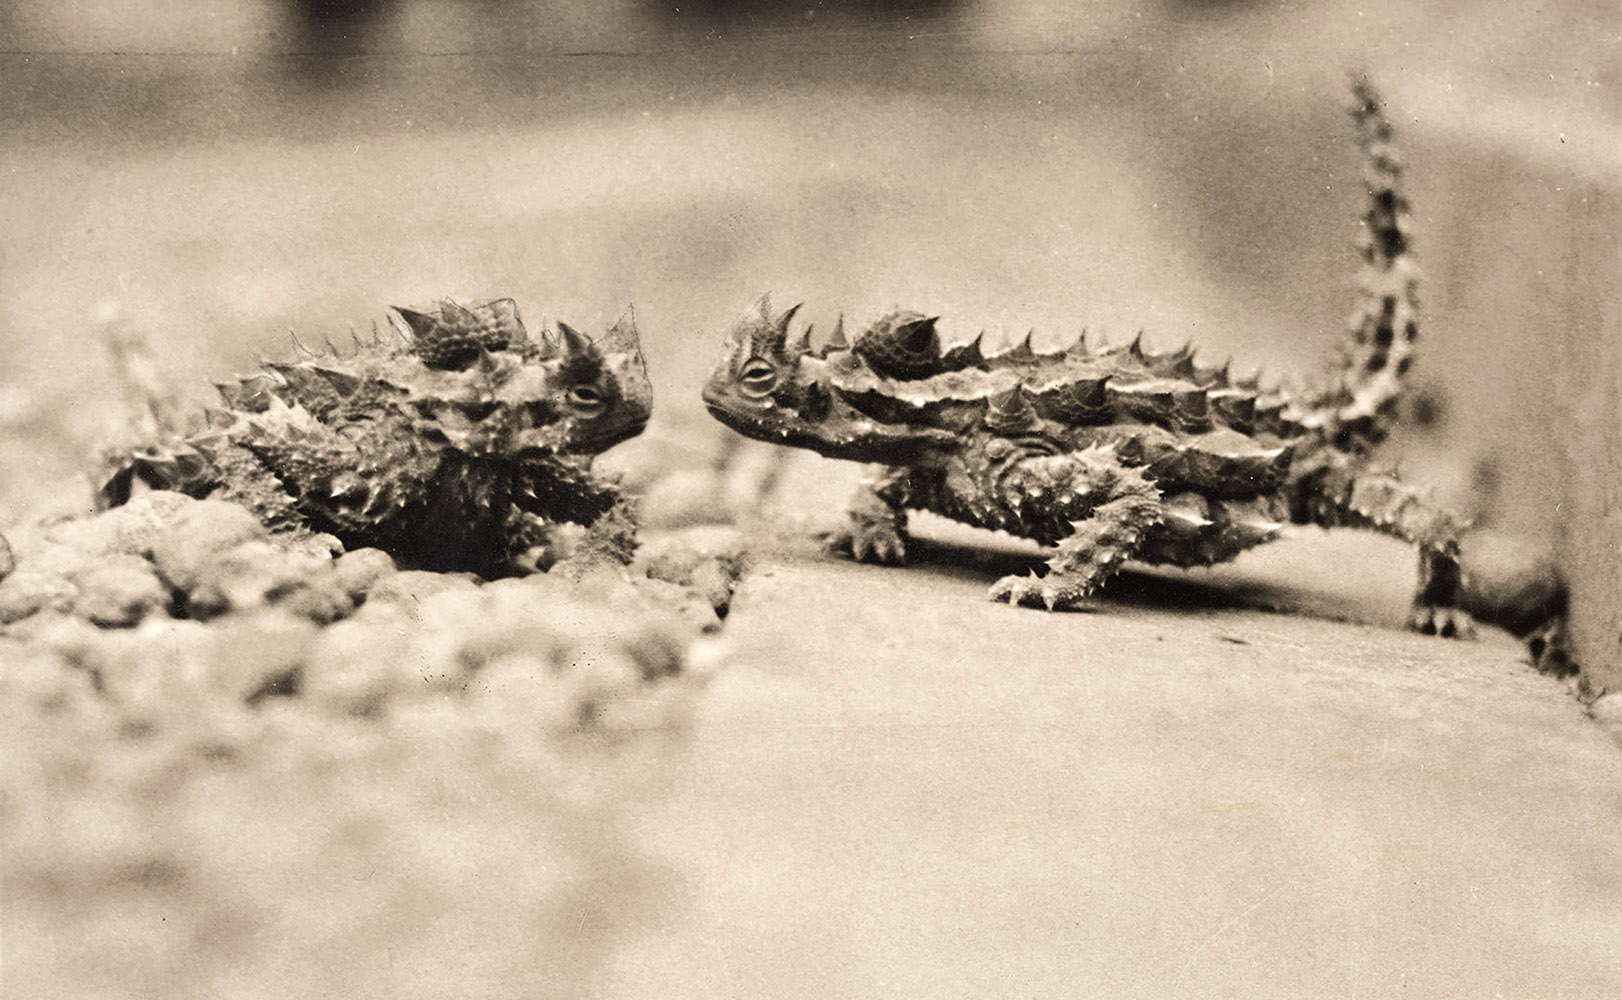 two spiky lizards are facing each other